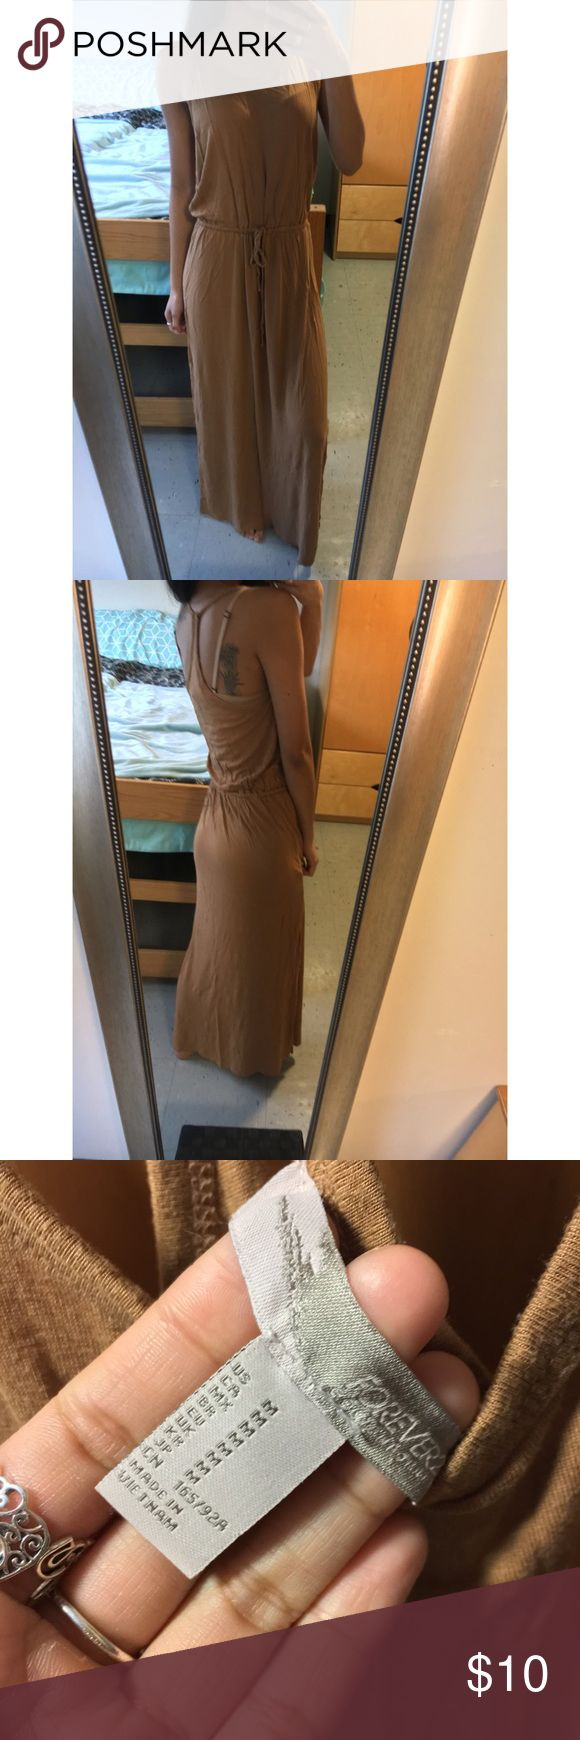 Chestnut Brown Maxi Dress Worn once perfect condition! Drawstring at waist make me an offer please :) Forever 21 Dresses Maxi